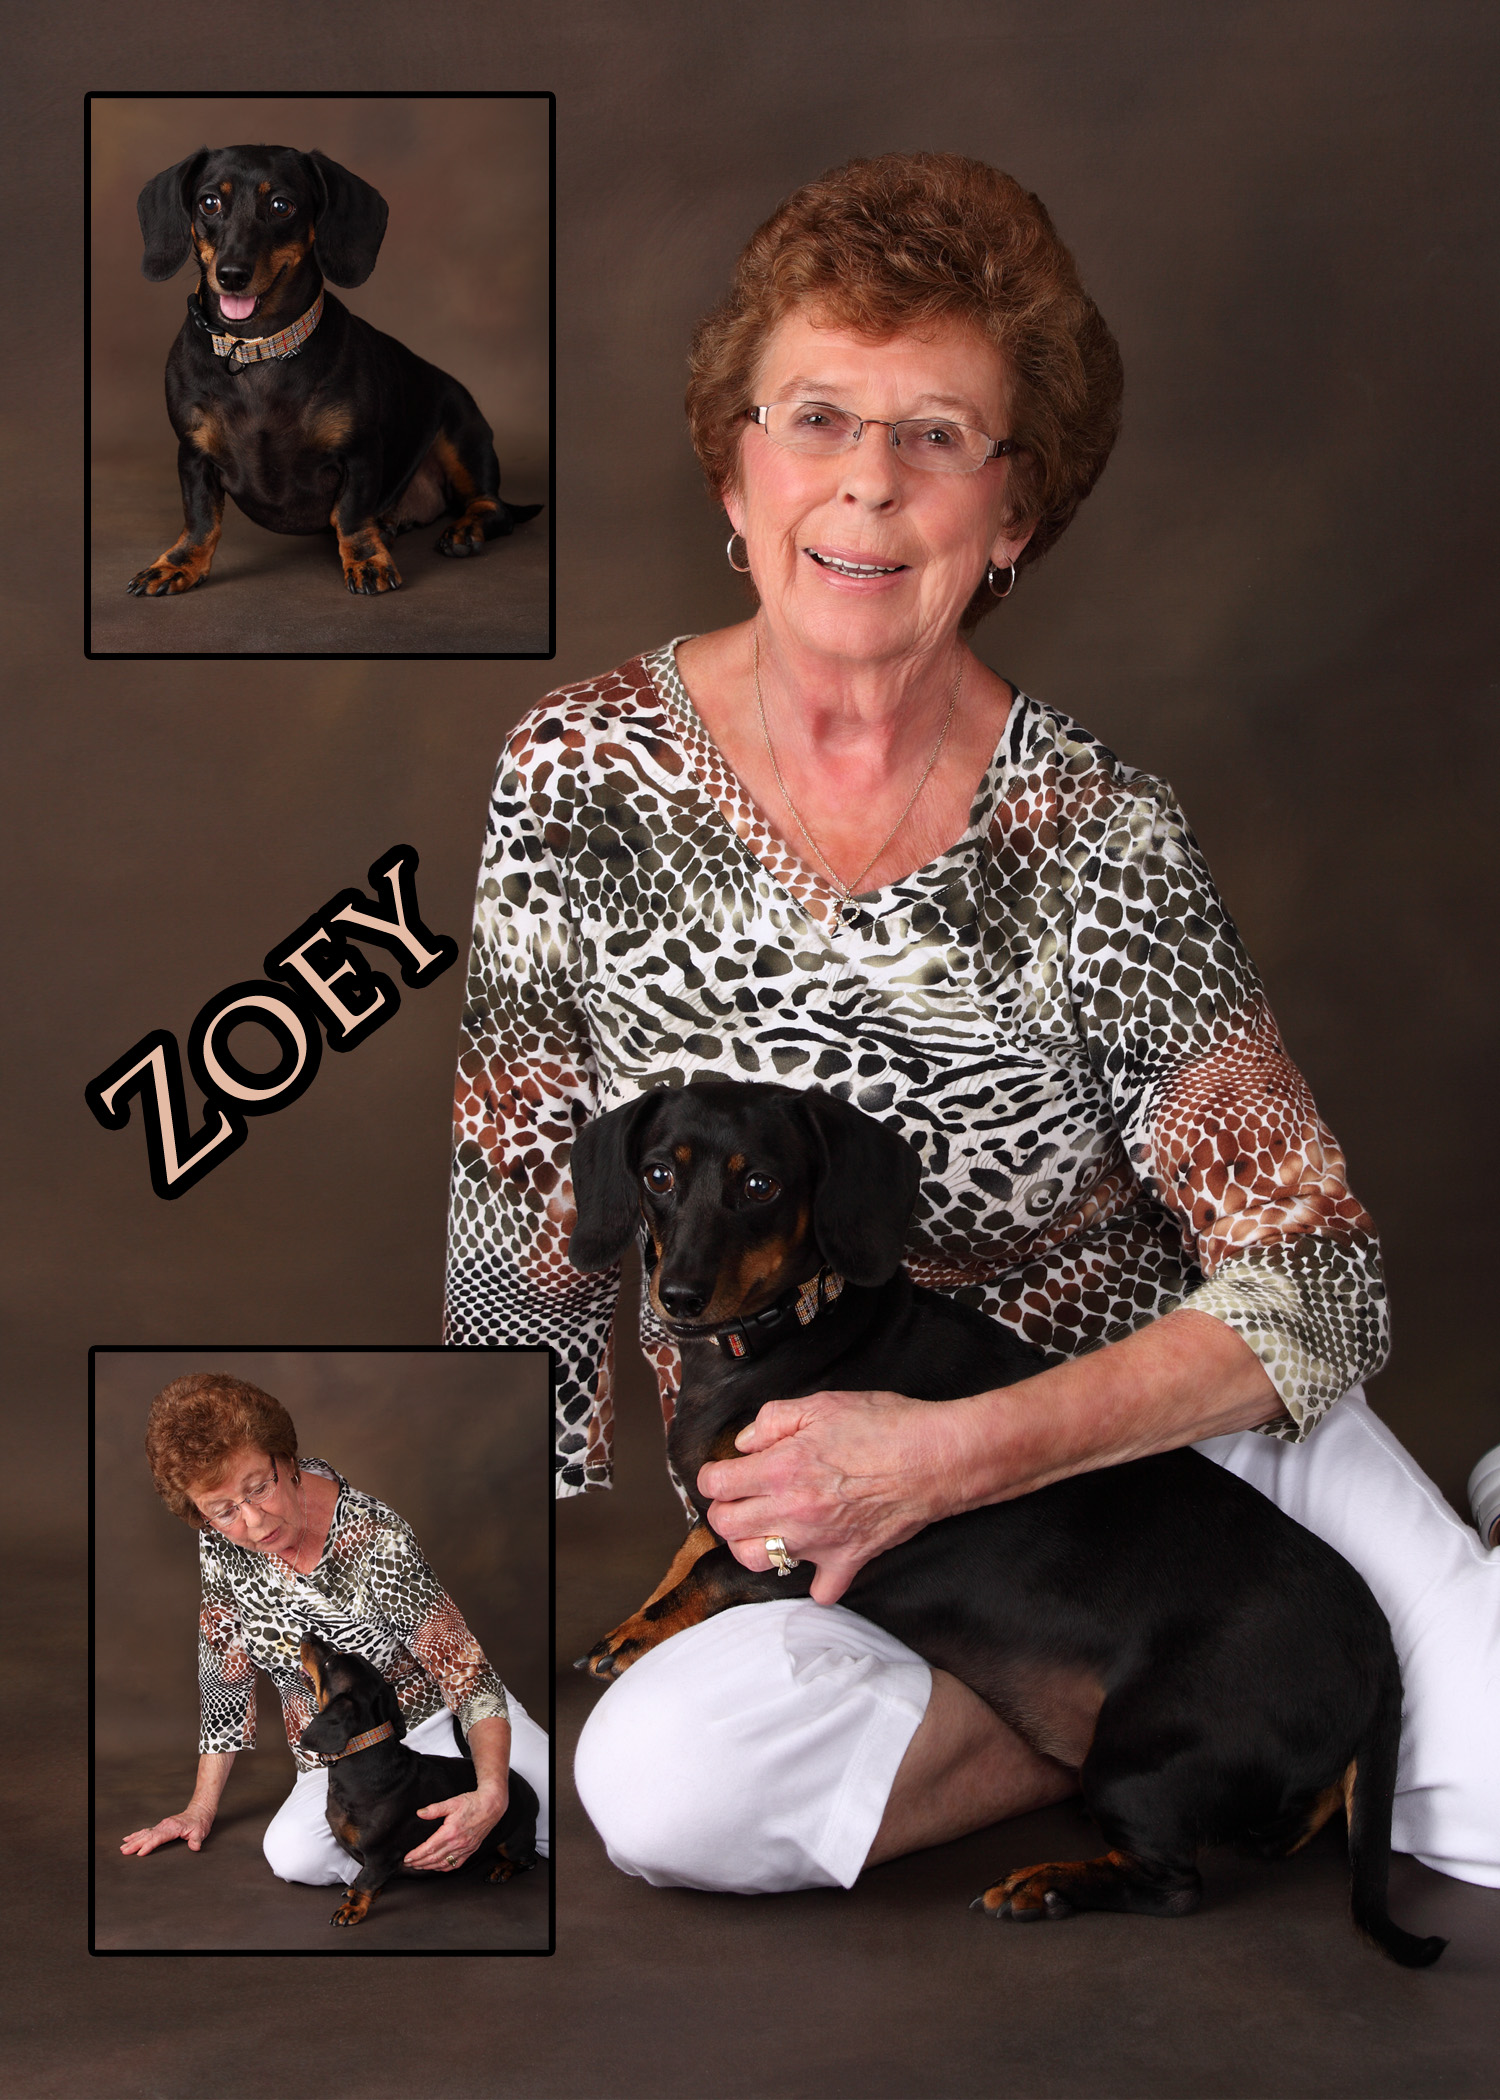 Zoey 5xy collage.jpg